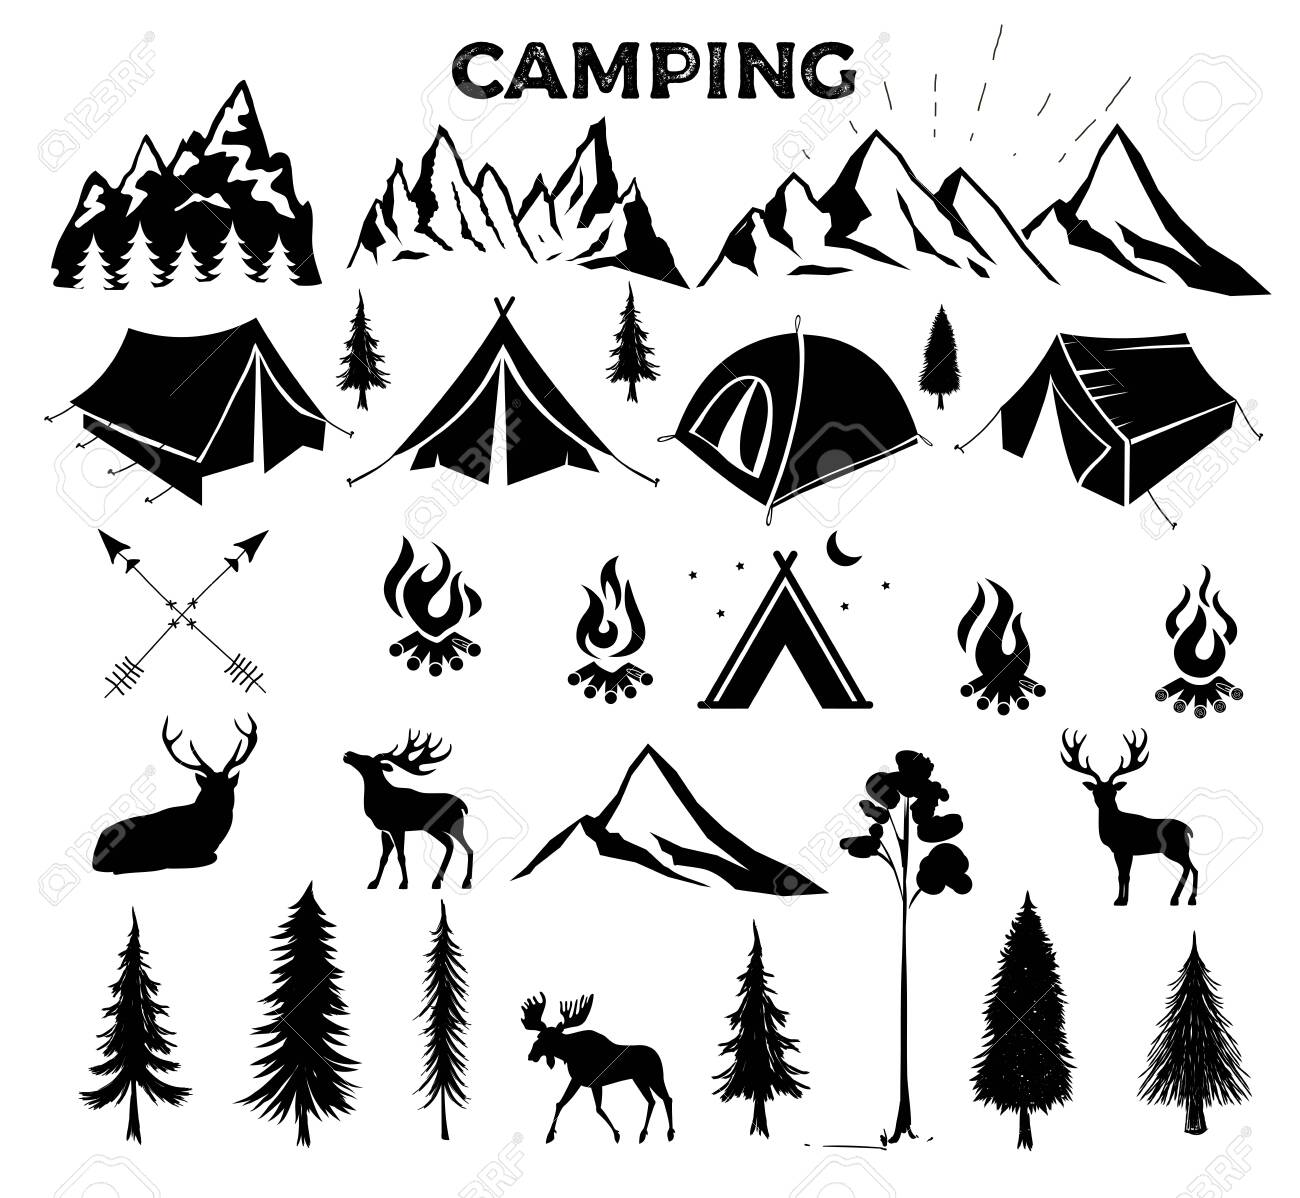 Travel Event. Camping vector logo template for your design. Tourist tent, forest, camp, trees, Camp badges, labels, banners, brochures. Set of vintage camping, outdoor adventure emblems. - 131824882